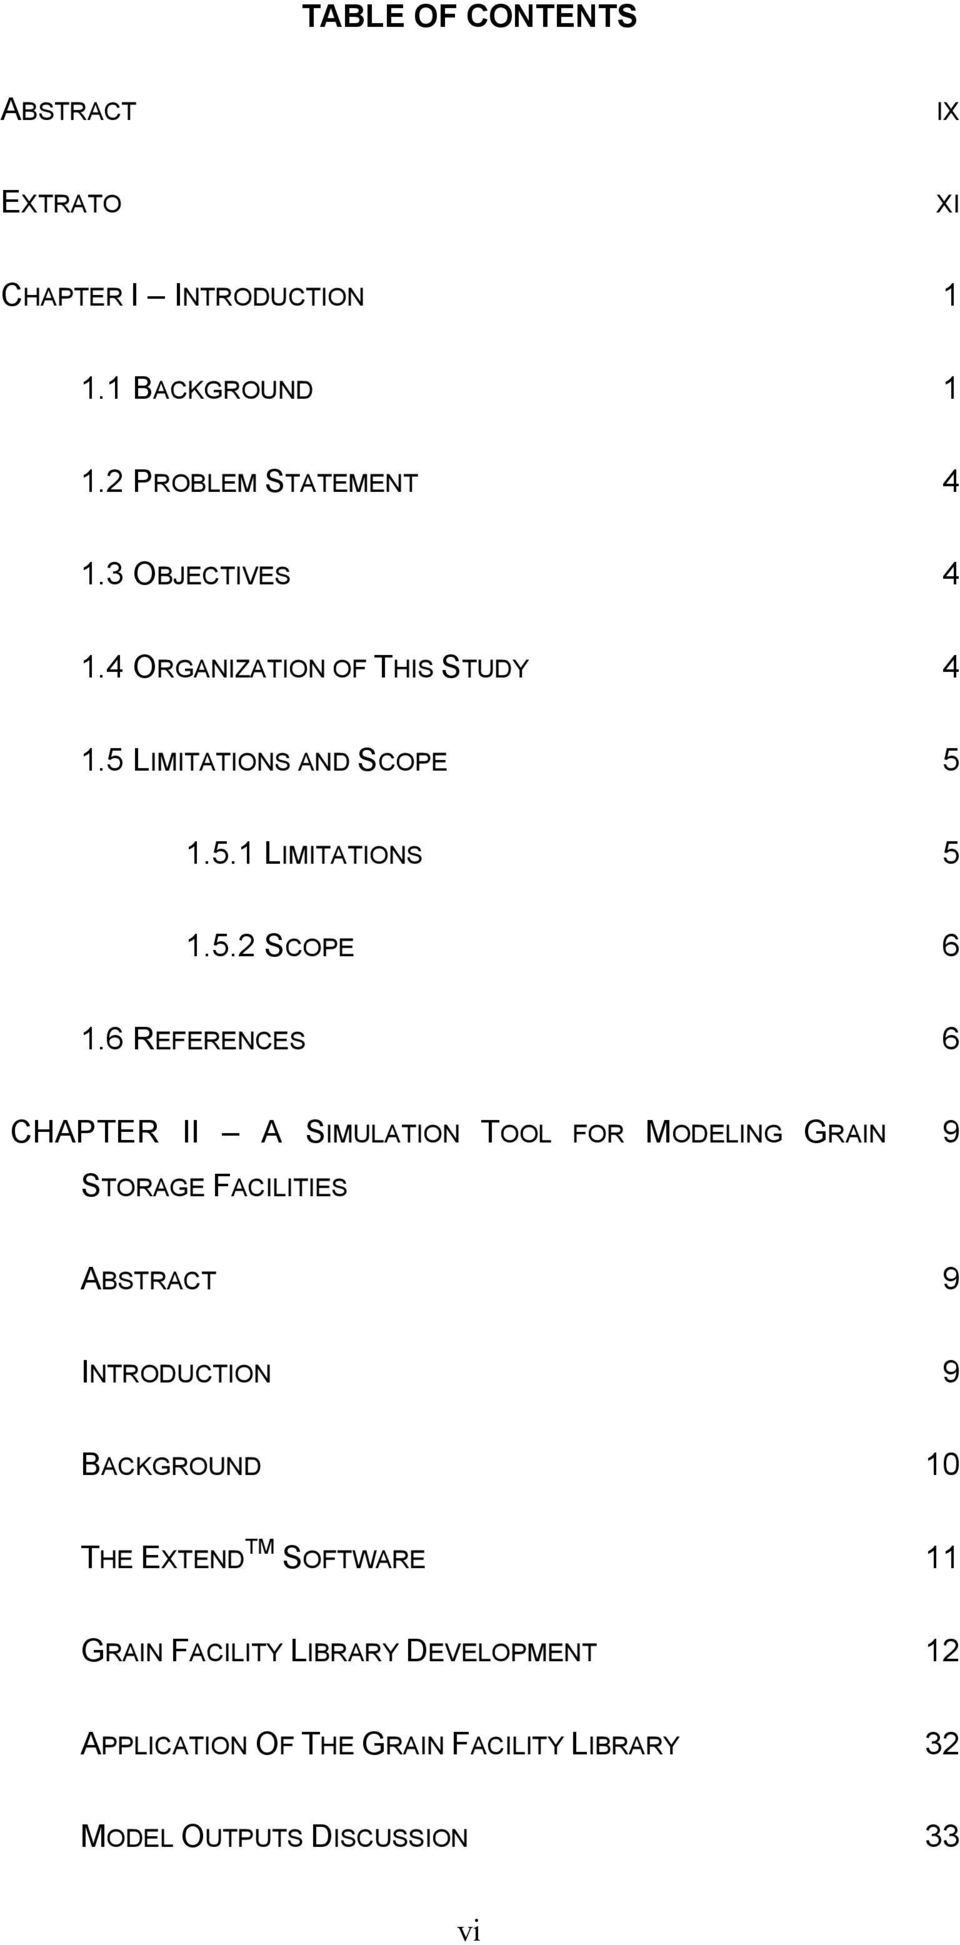 6 REFERENCES 6 CHAPTER II A SIMULATION TOOL FOR MODELING GRAIN 9 STORAGE FACILITIES ABSTRACT 9 INTRODUCTION 9 BACKGROUND